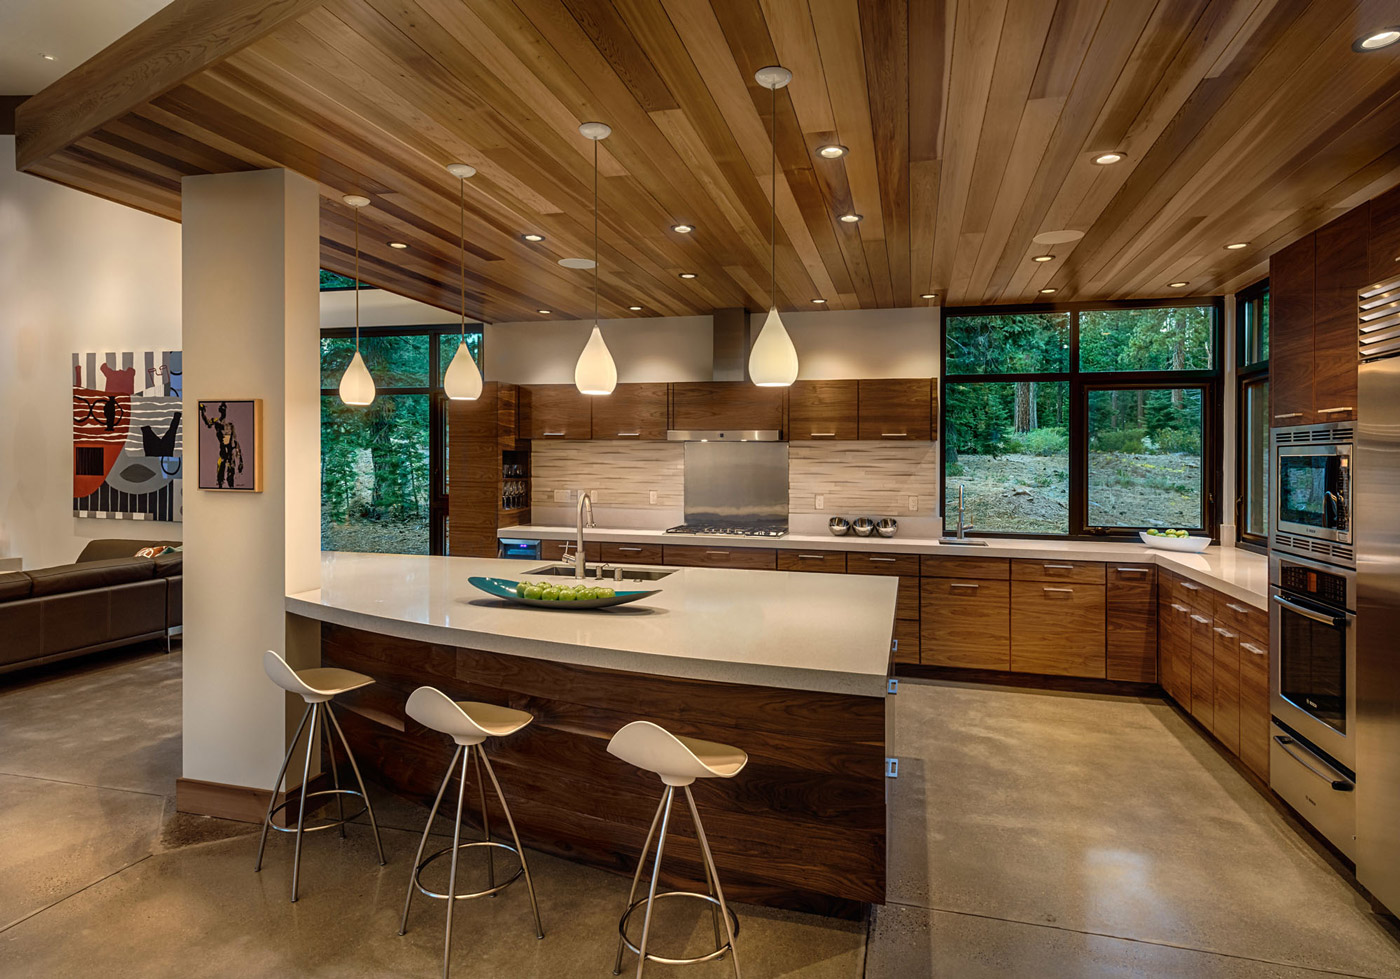 kitchen cabinets sacramento stainless steel single bowl sink modern mountain home in truckee